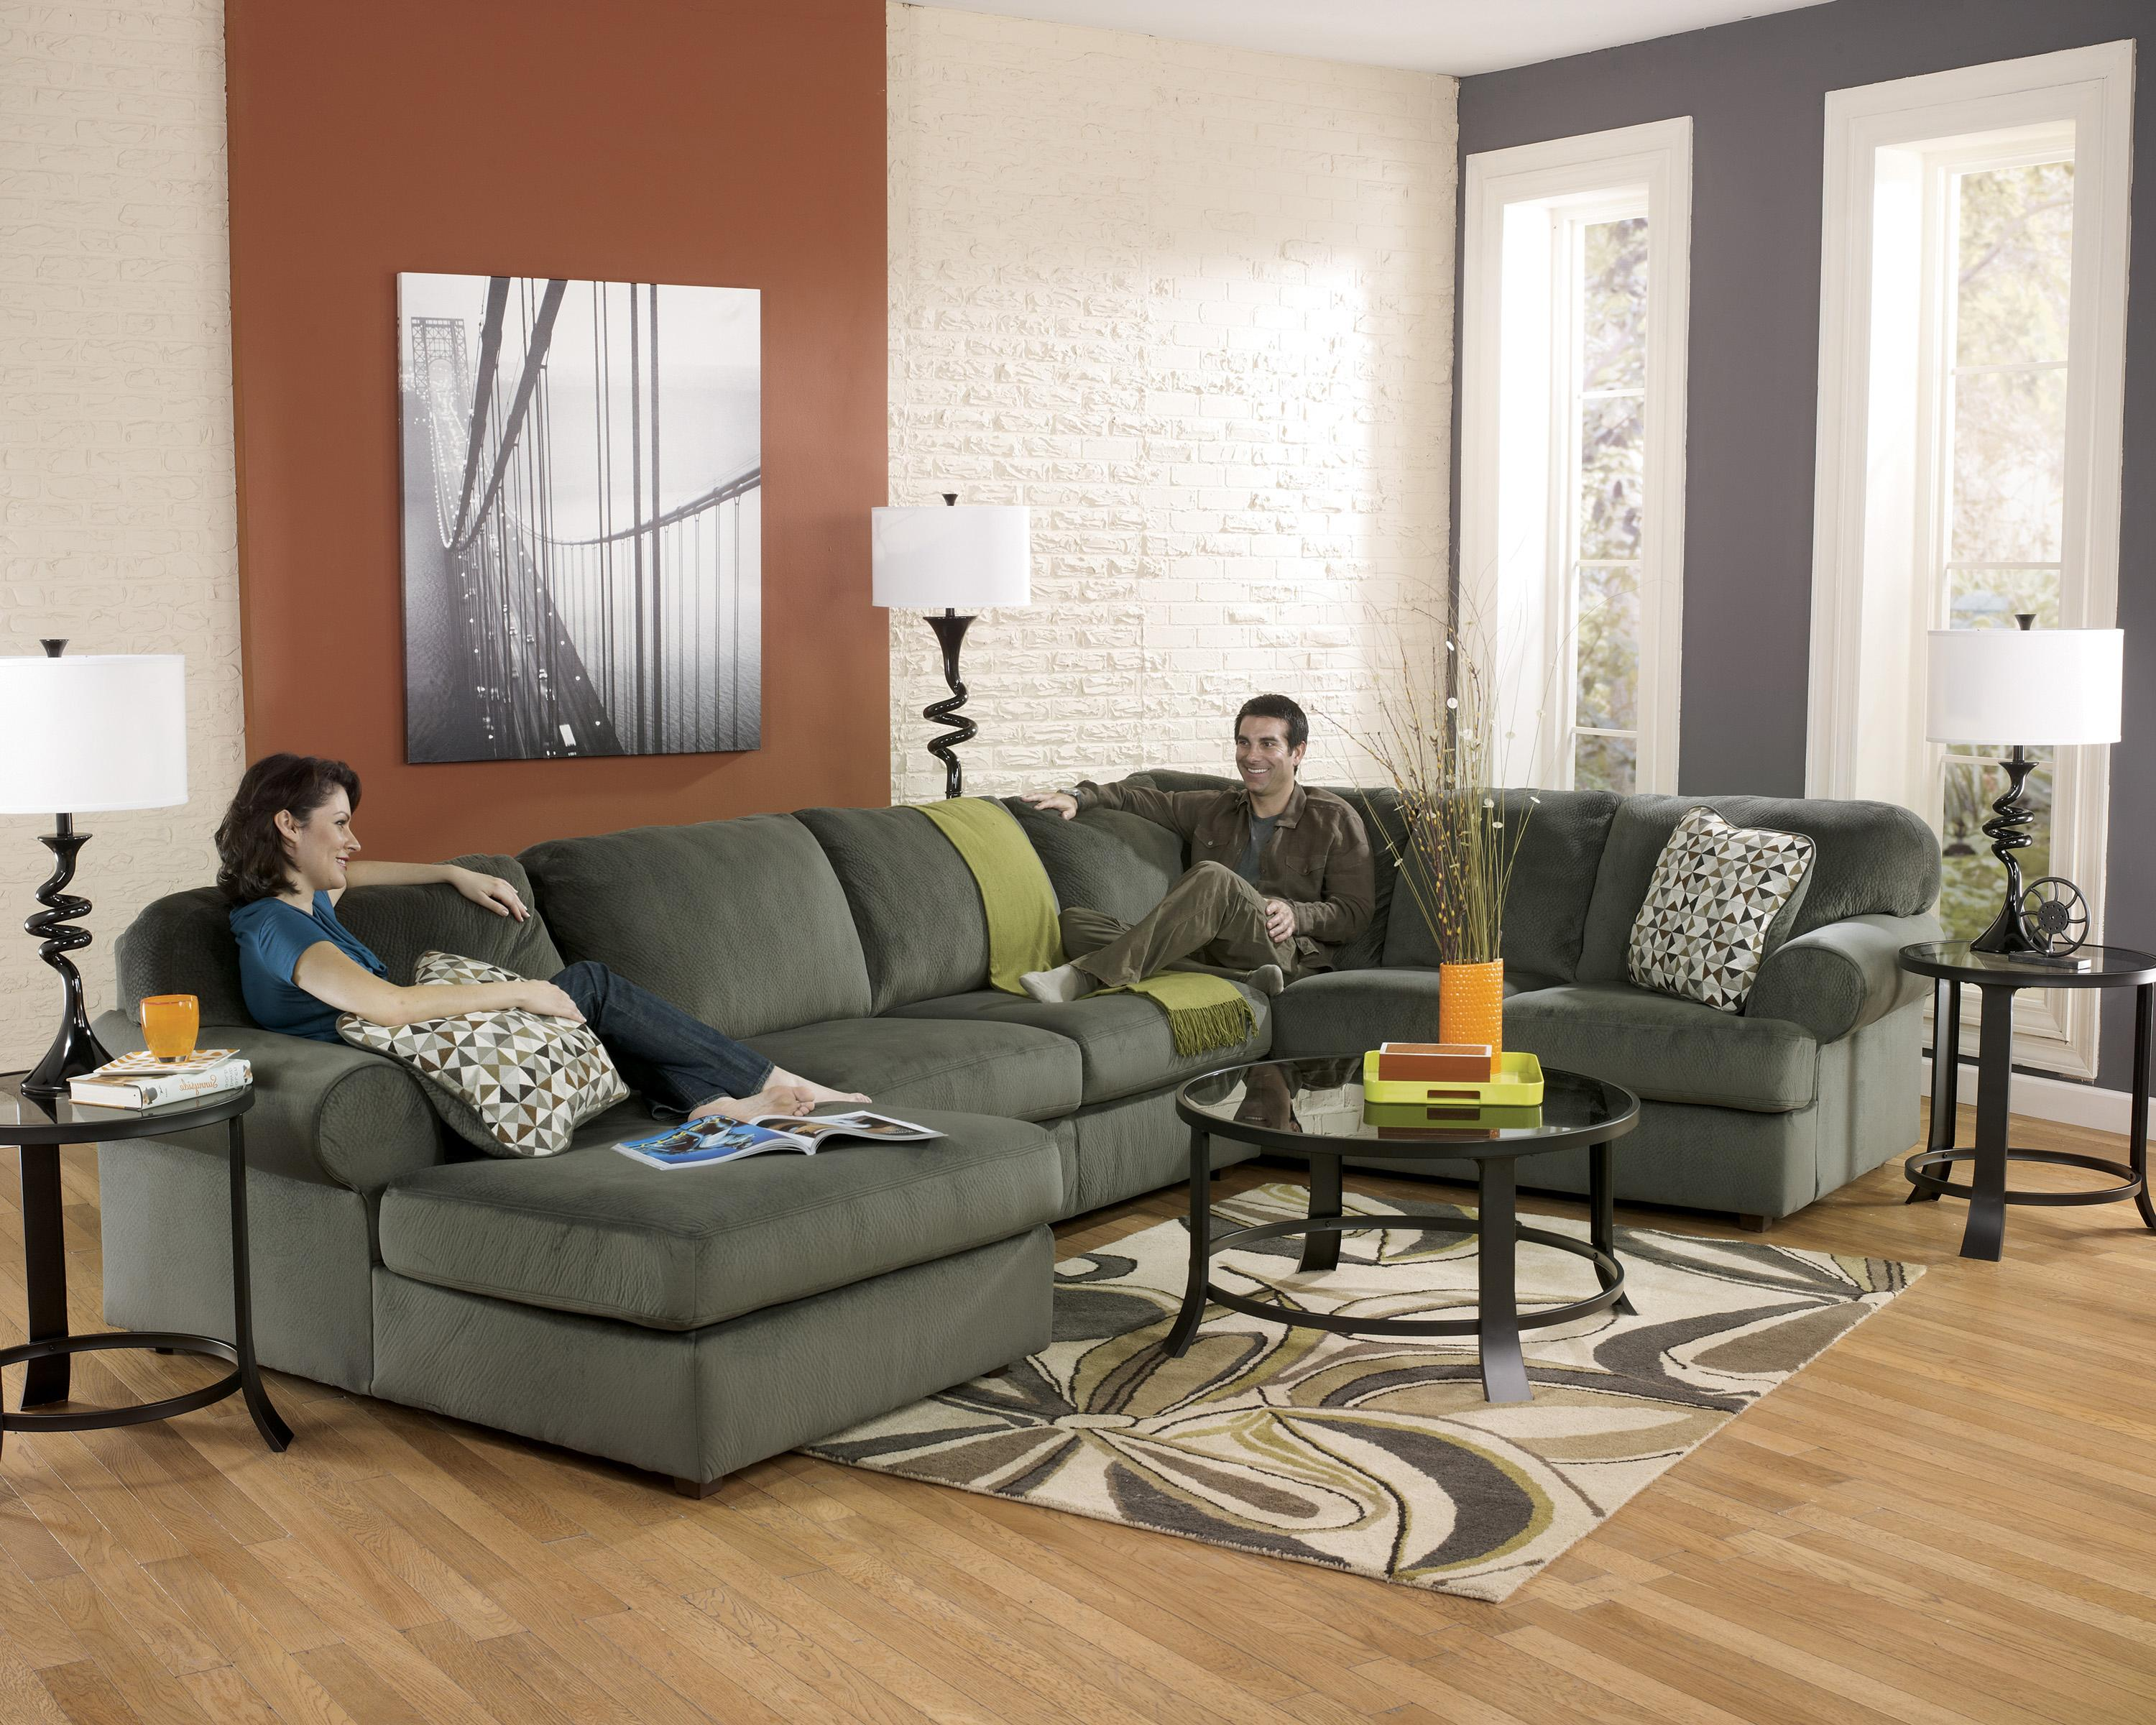 color collection sectional decoration special living brow design room ideas furniture home sets elegant